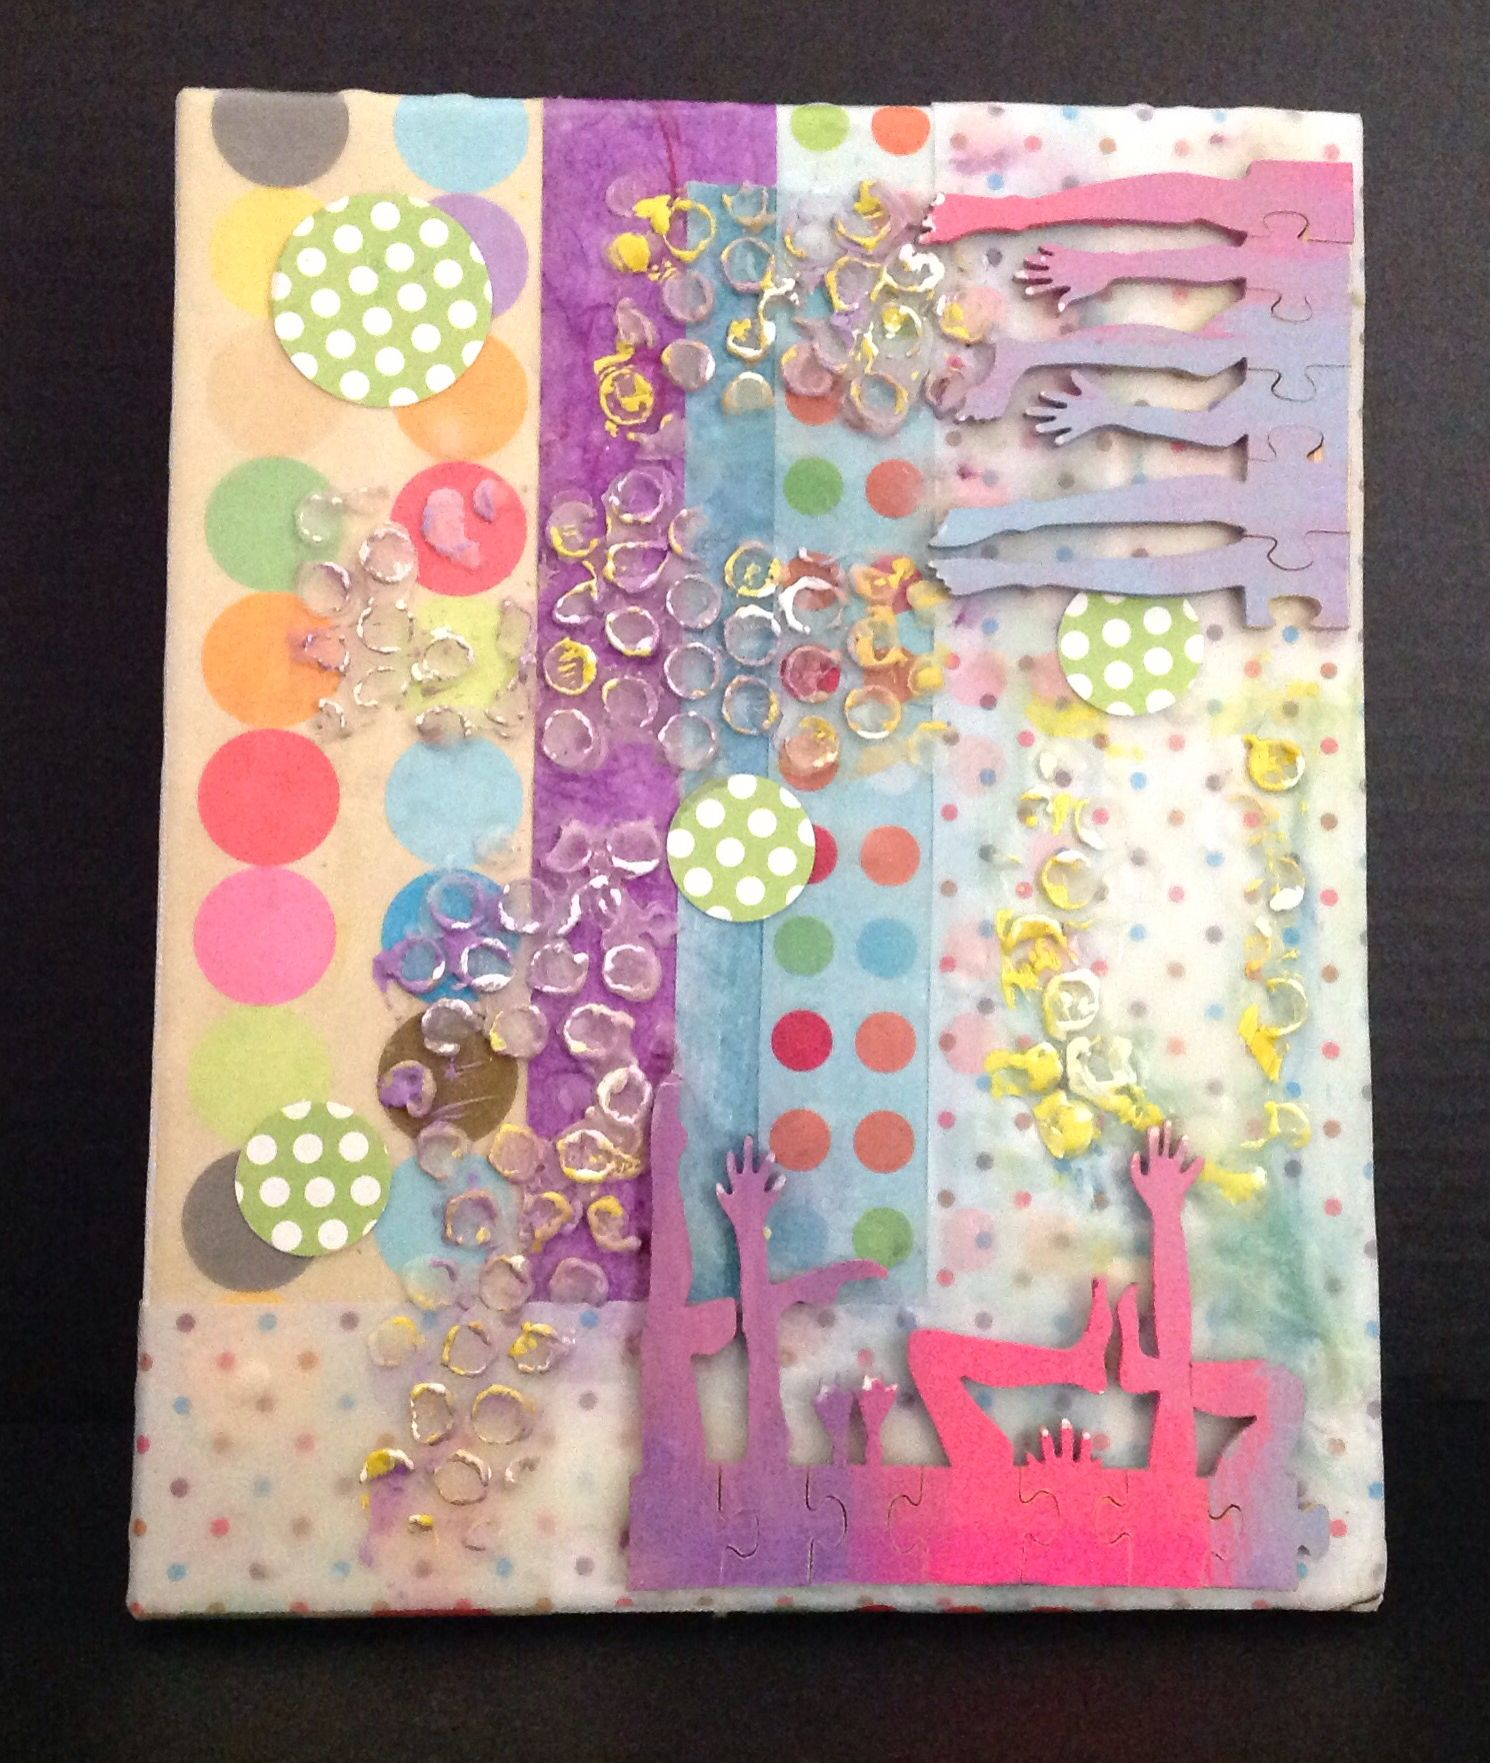 8x10 canvas, puzzle pieces, wax, paper.  By Cheryl Jacobson